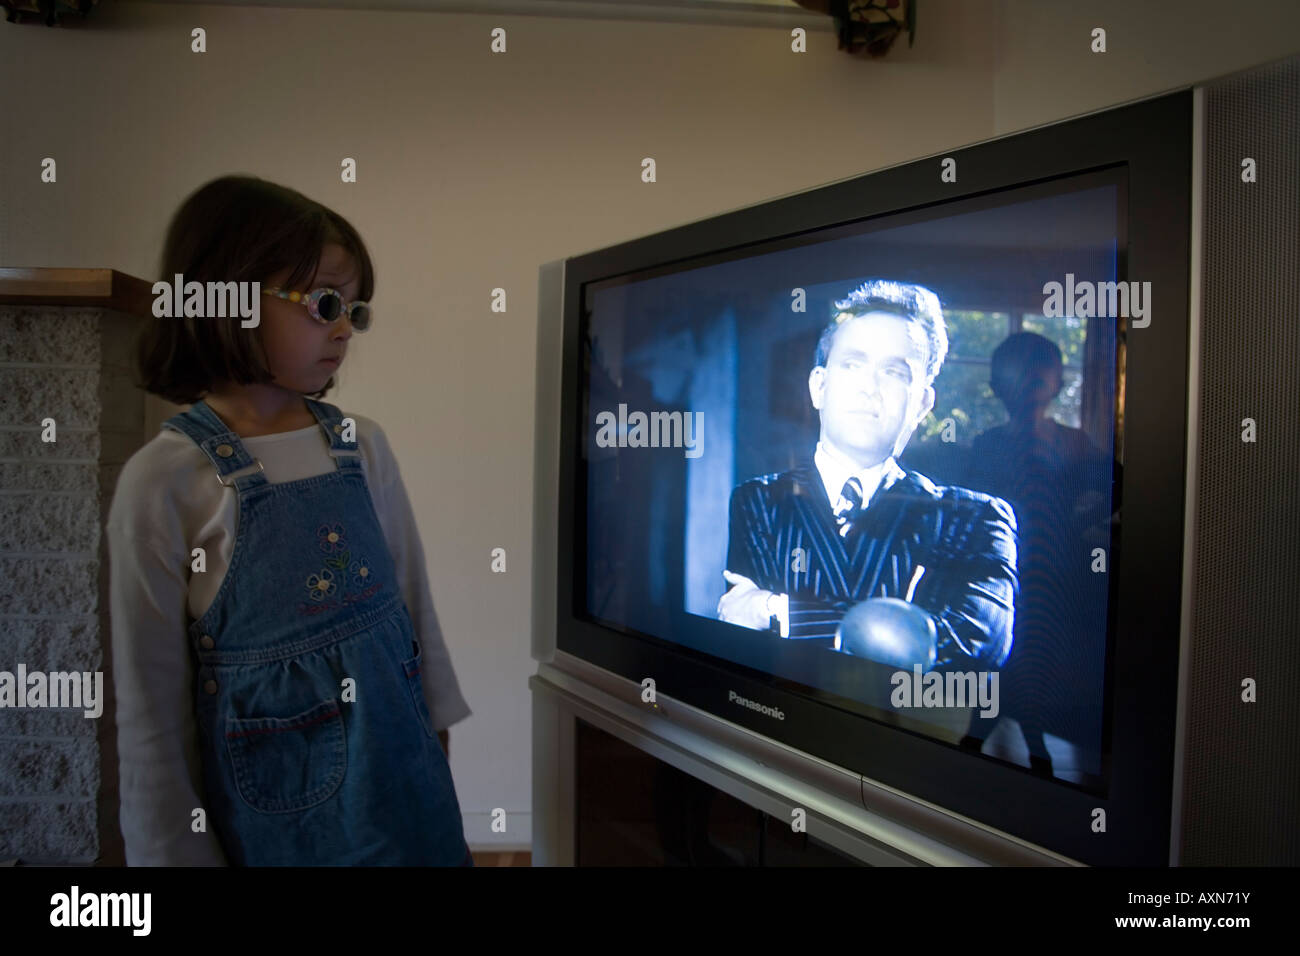 Girl aged four with sunglasses watches TV with man on programme and brother reflected in screen behind her - Stock Image